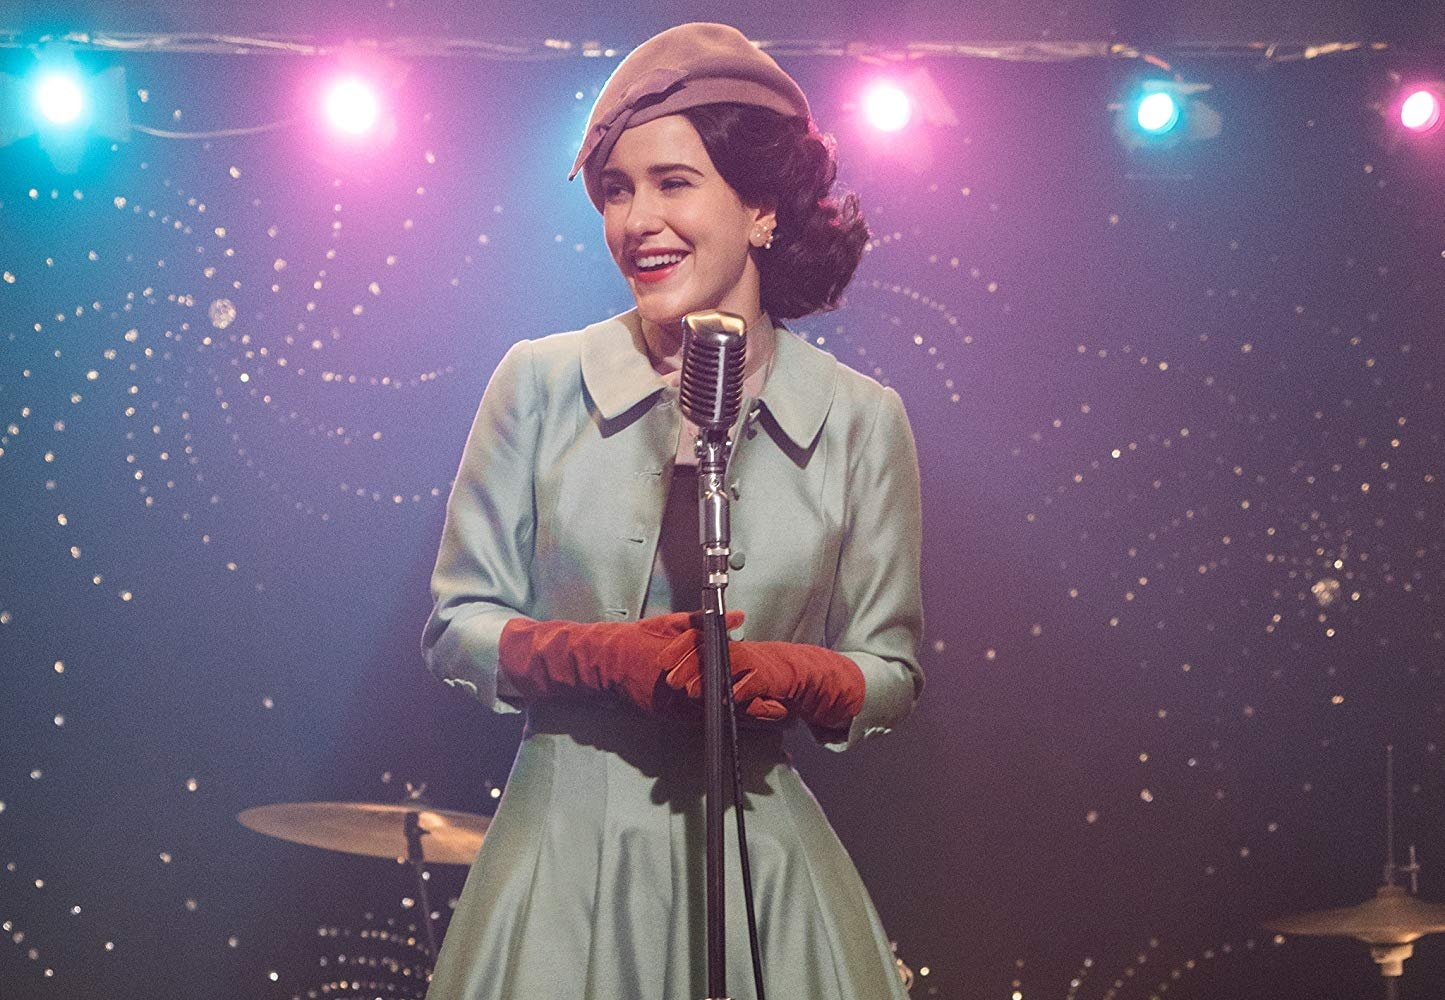 Love 'The Marvelous Mrs. Maisel'? Audition for These Amazon + Period Projects